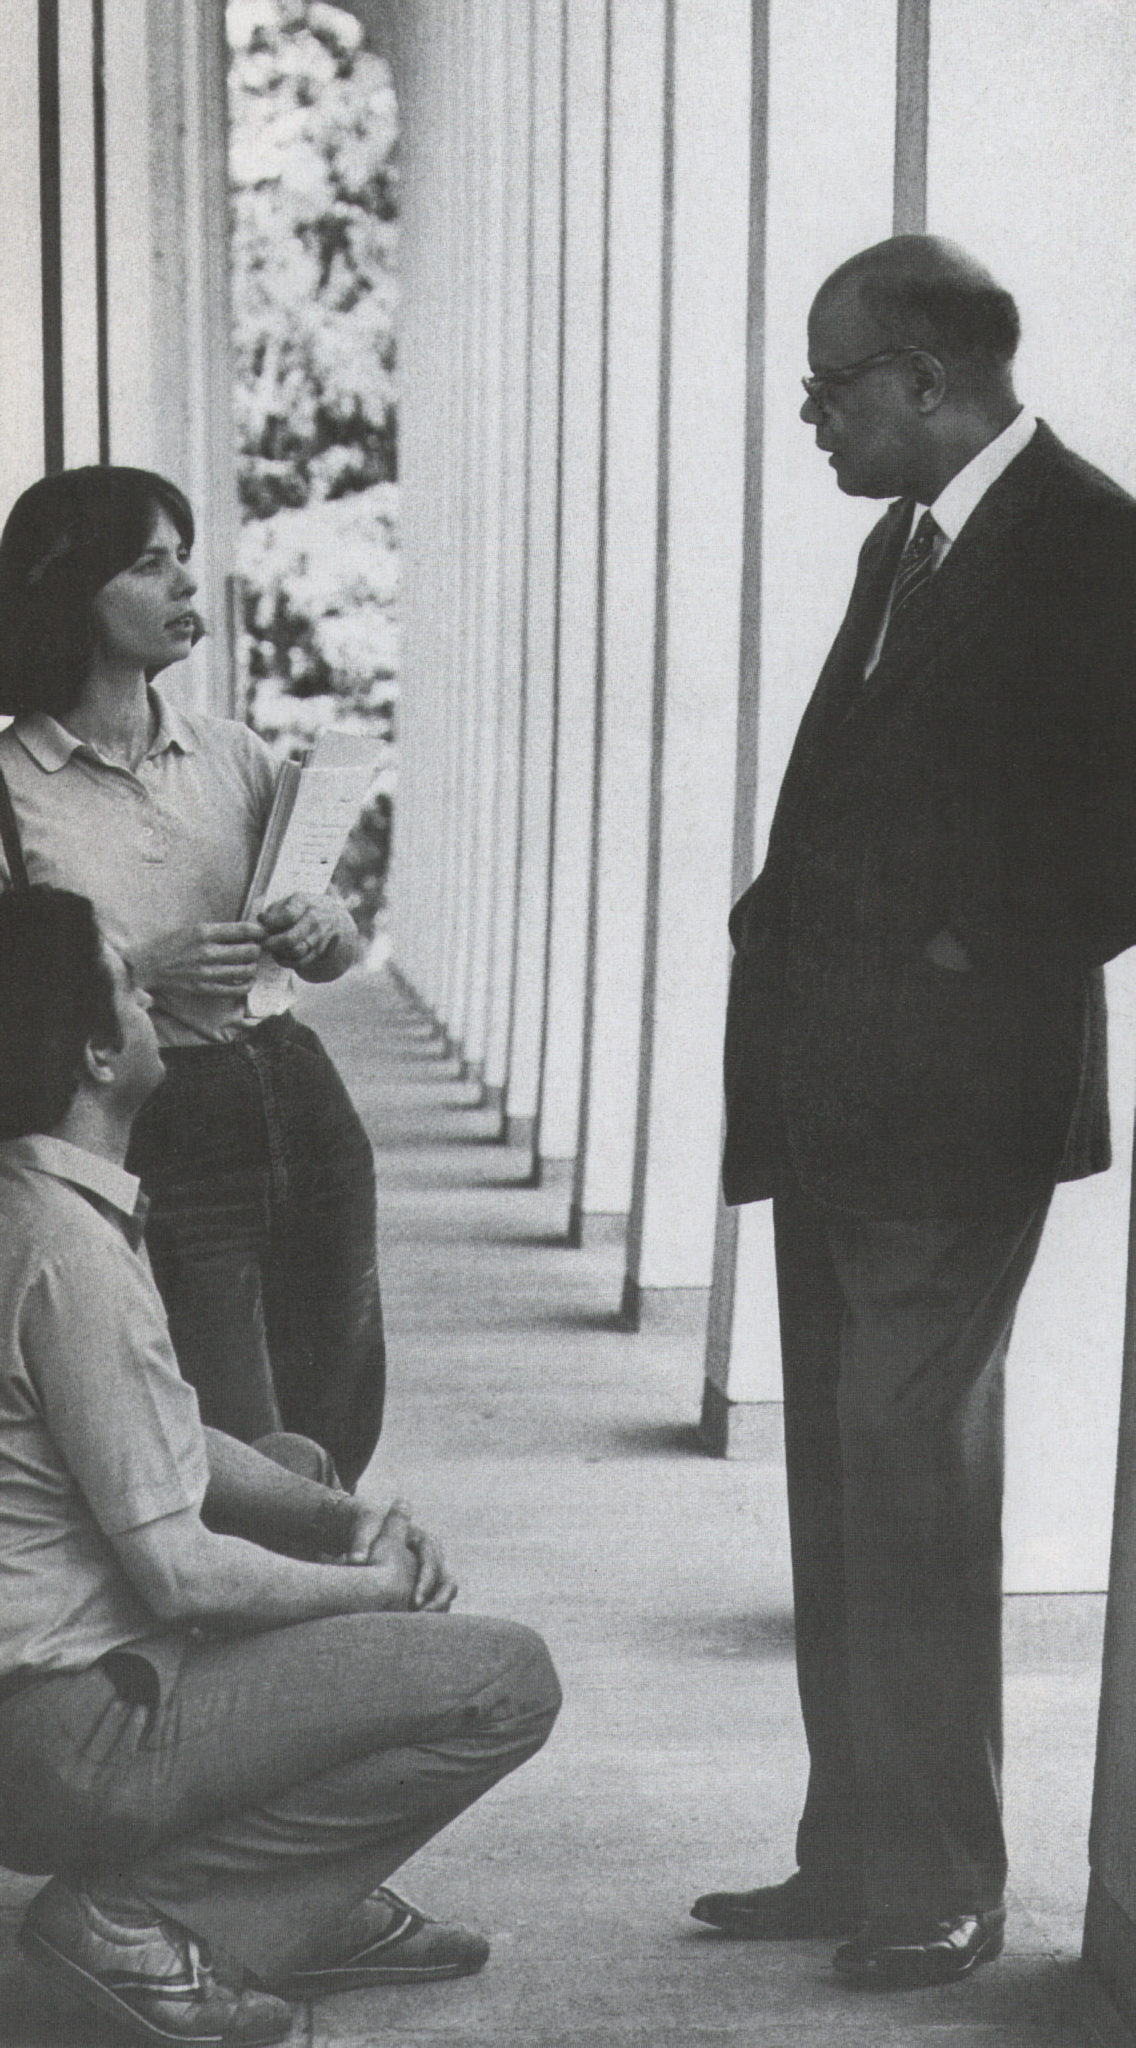 Lewis deep in discussion with Princeton students. Photograph courtesy J. T. Miller